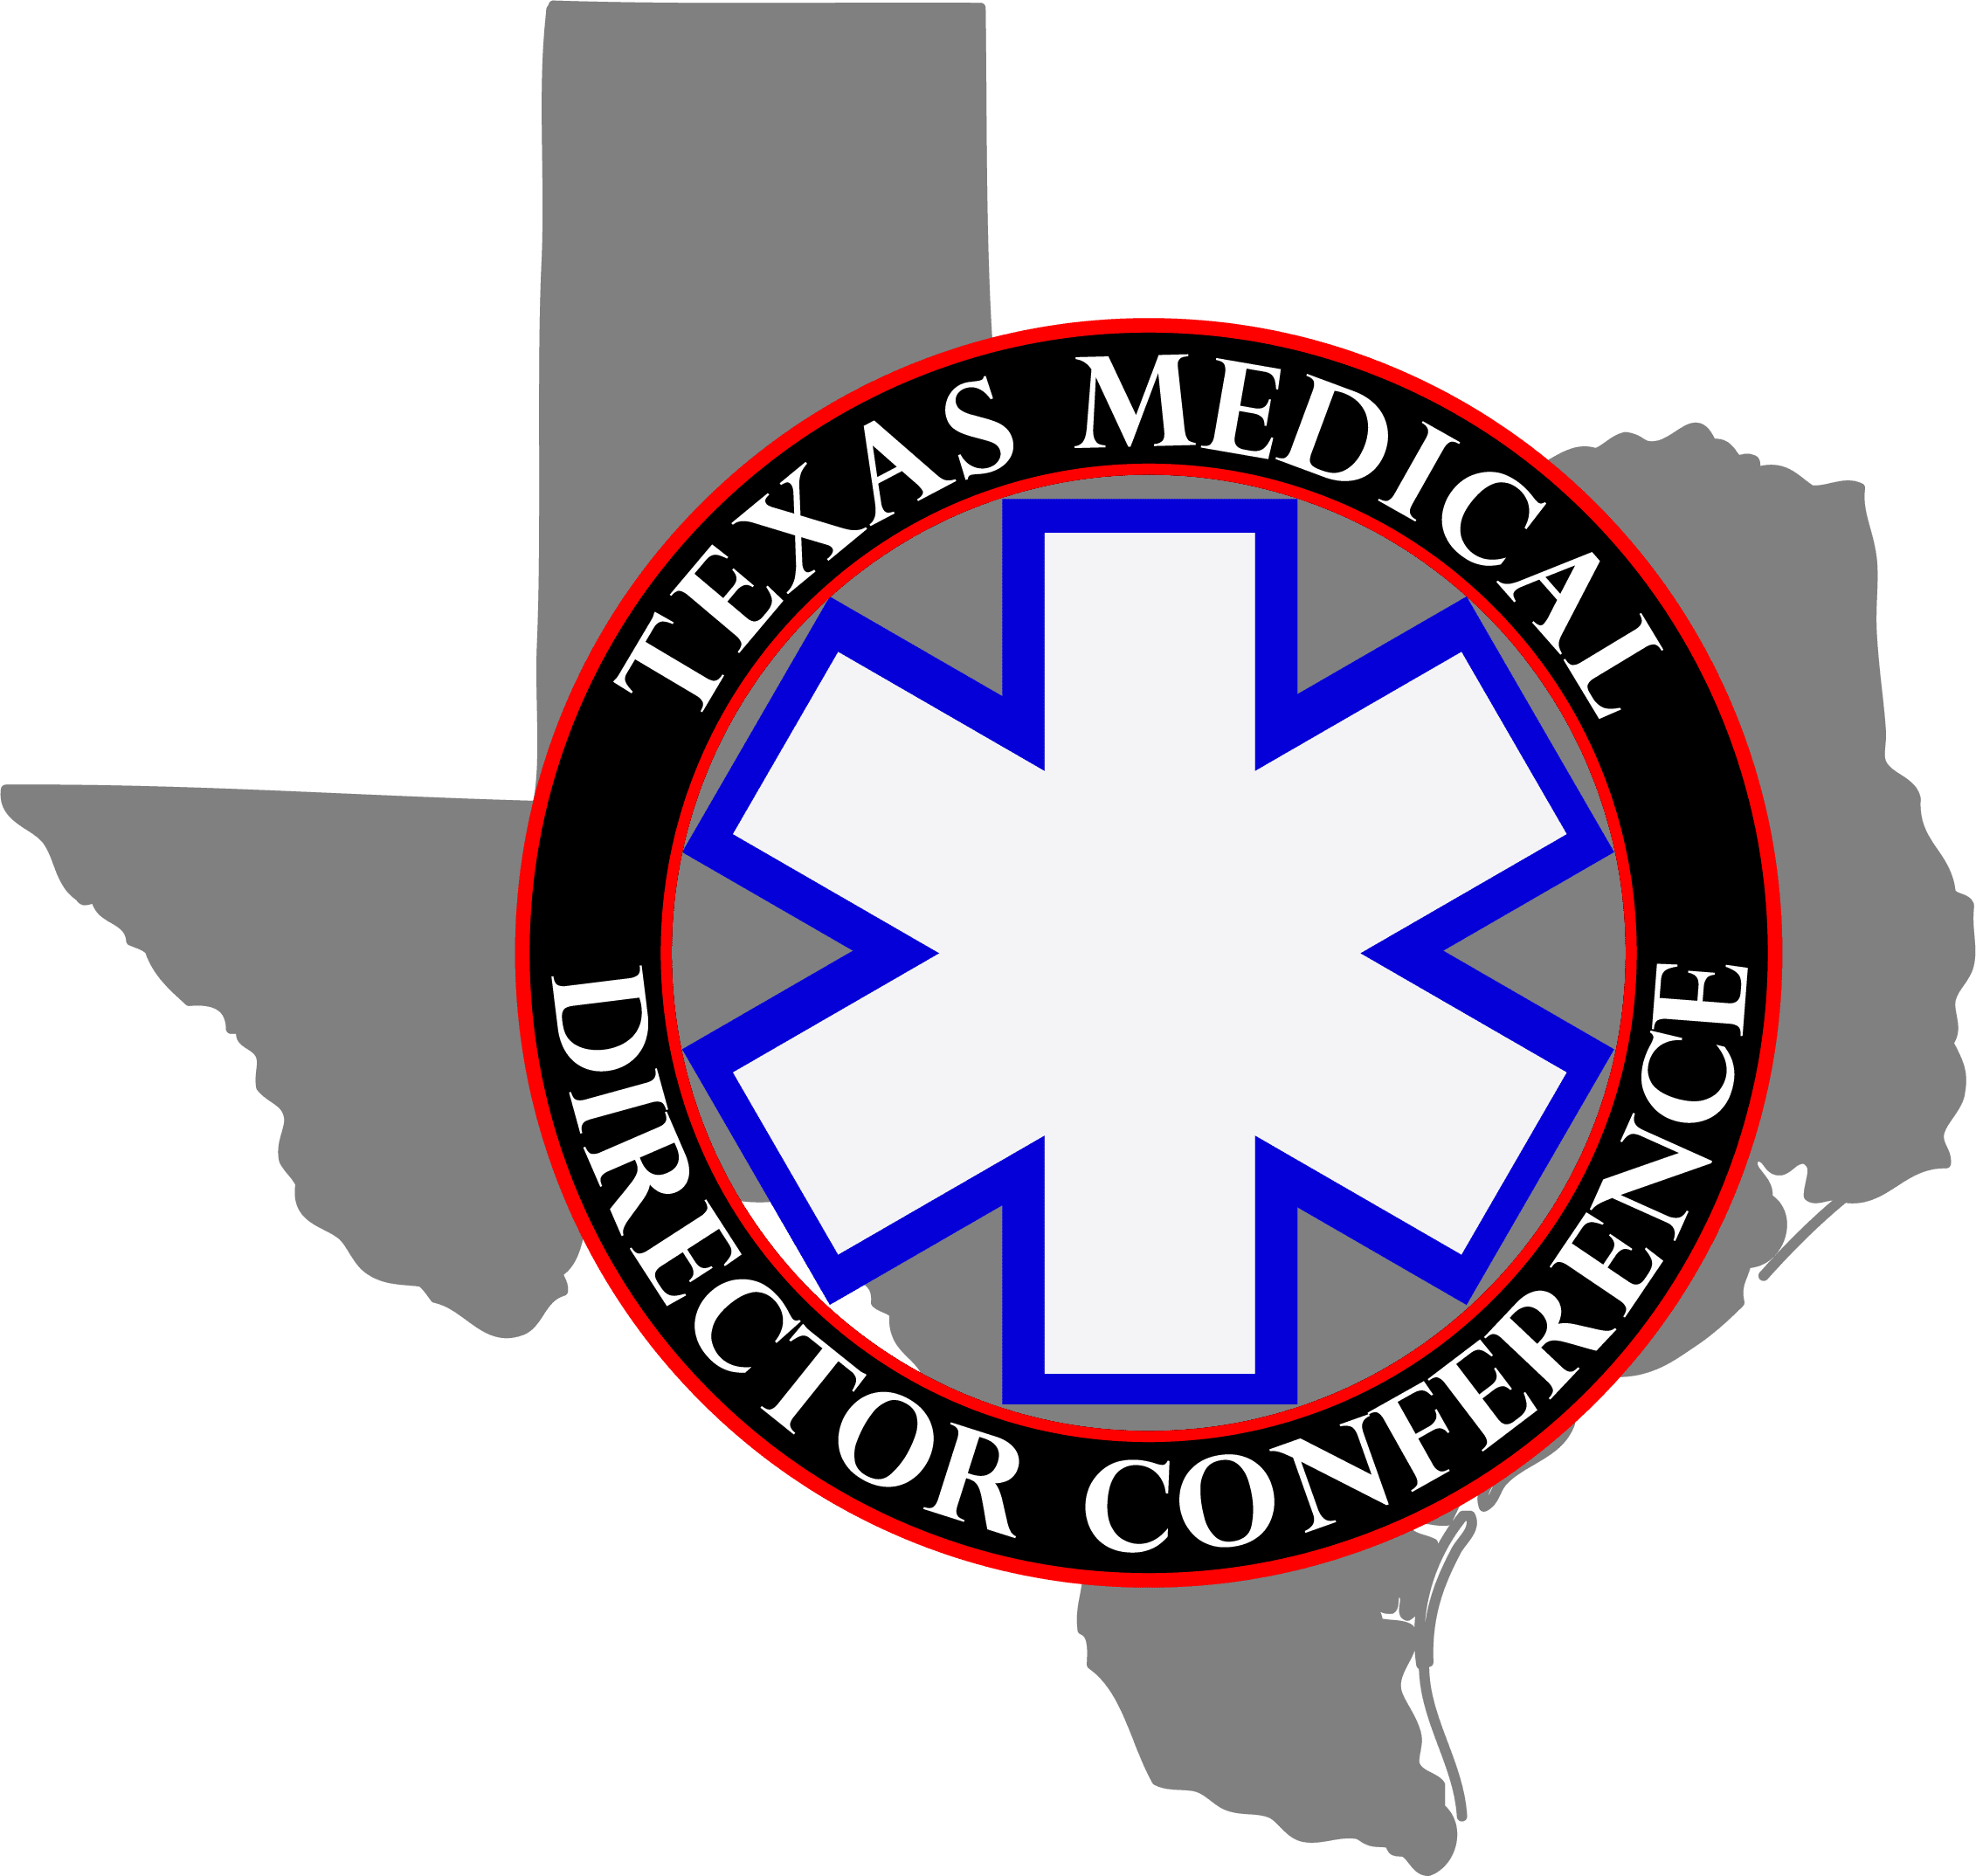 NAEMSP Texas Chapter